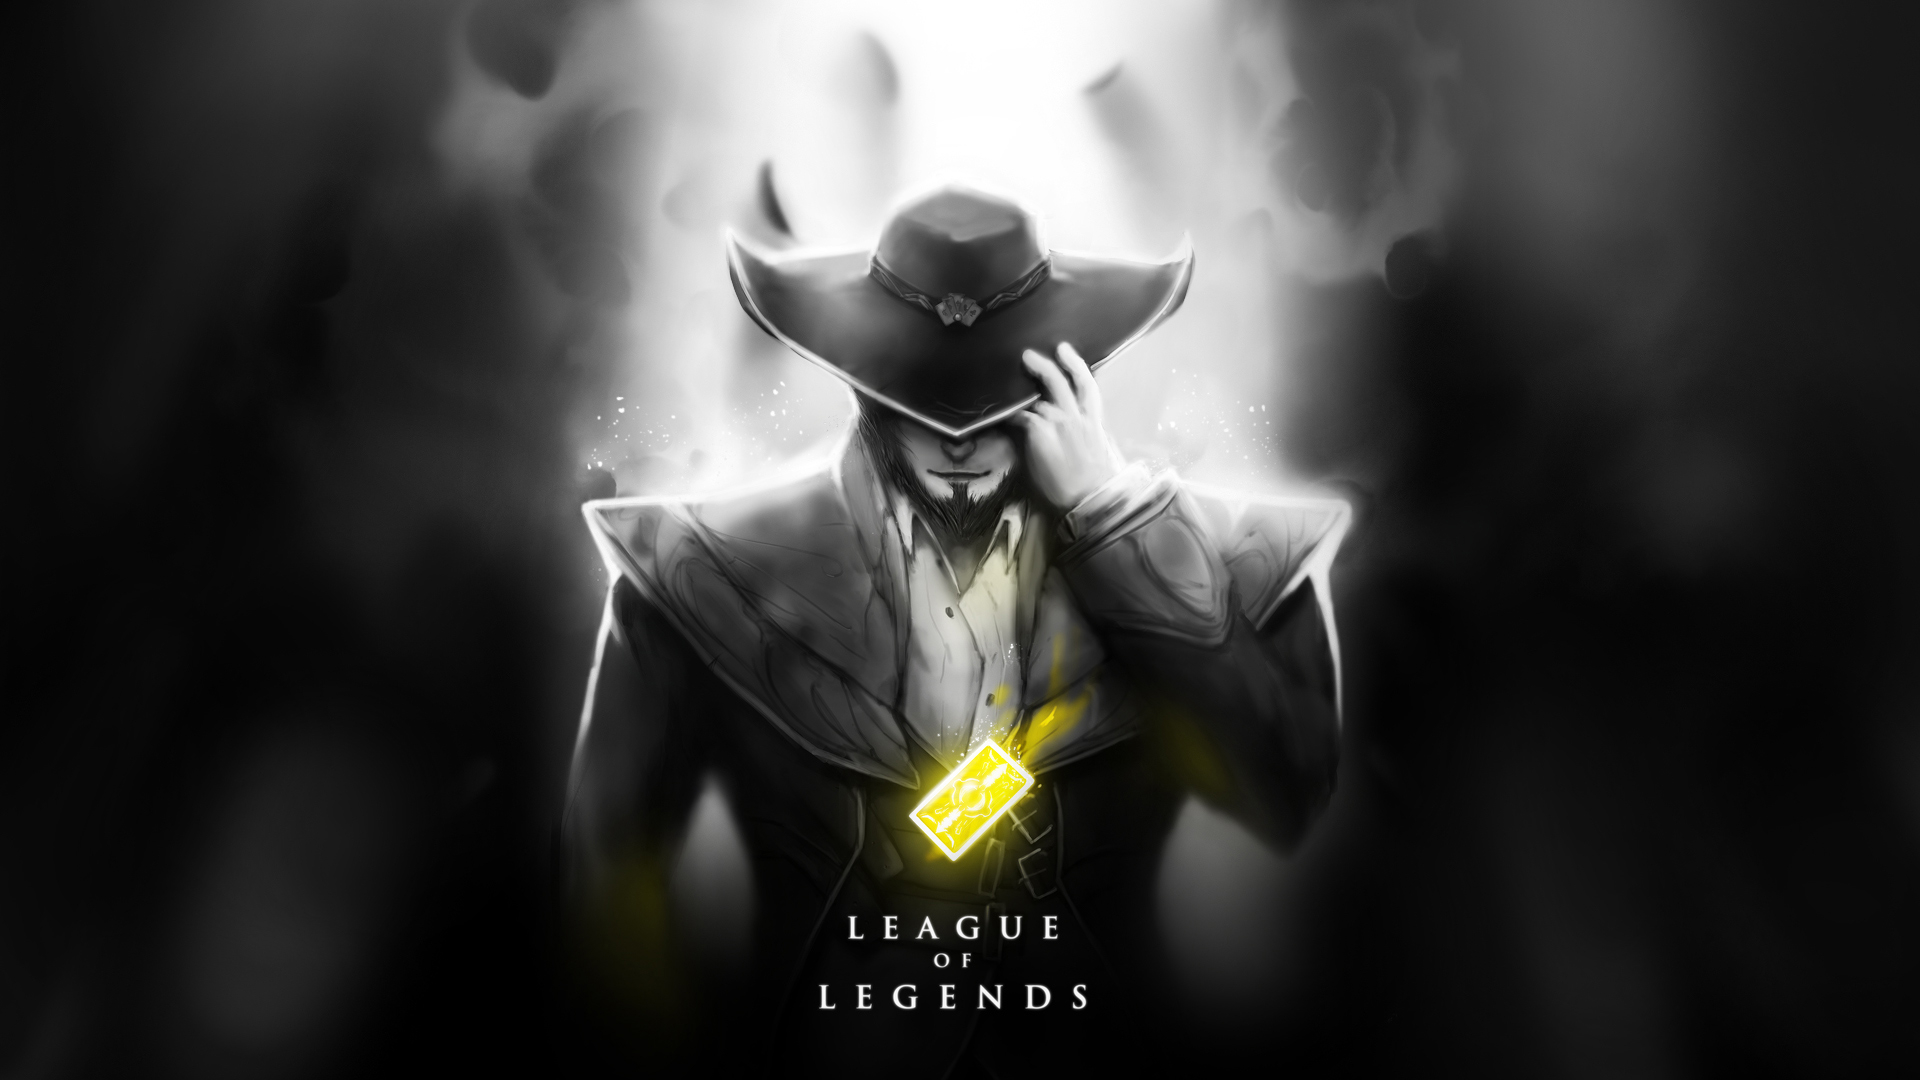 twisted-fate-league-of-legends-wallpaper-hd-backgrounds-02